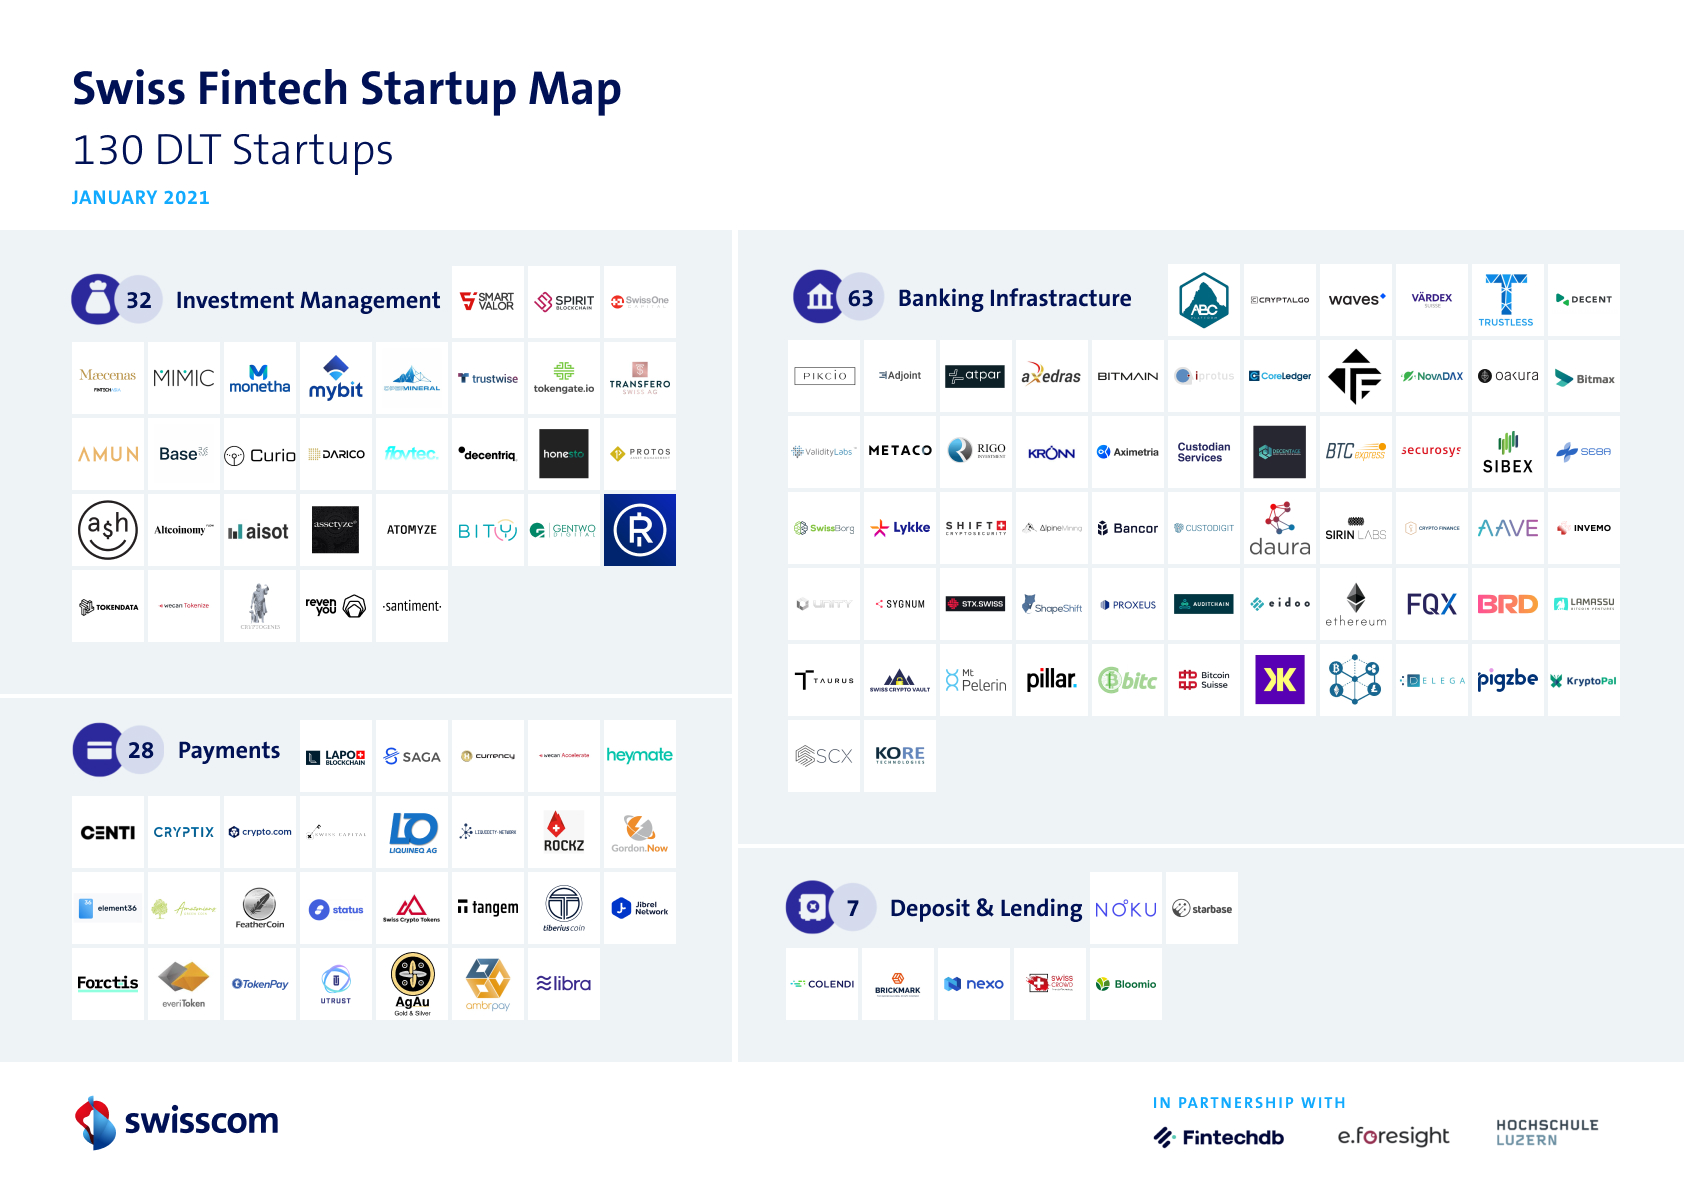 Swiss DLT startups vertical distribution, Swiss Fintech Startup Map, Swisscom, January 2021